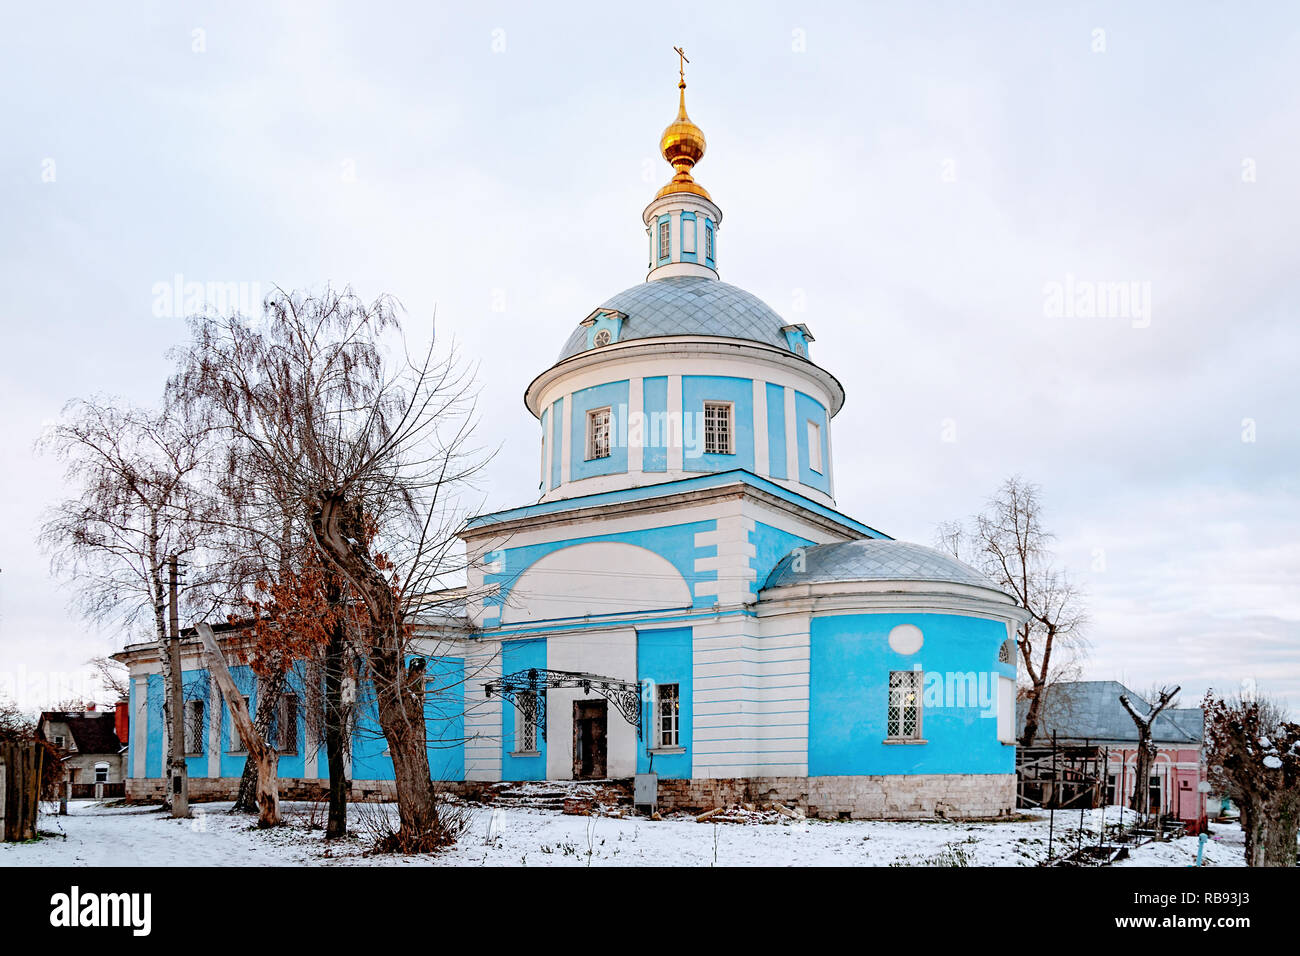 The Church of the Intercession of the blessed virgin Mary Pokrovskaya. Kolomna, Russia. Stock Photo